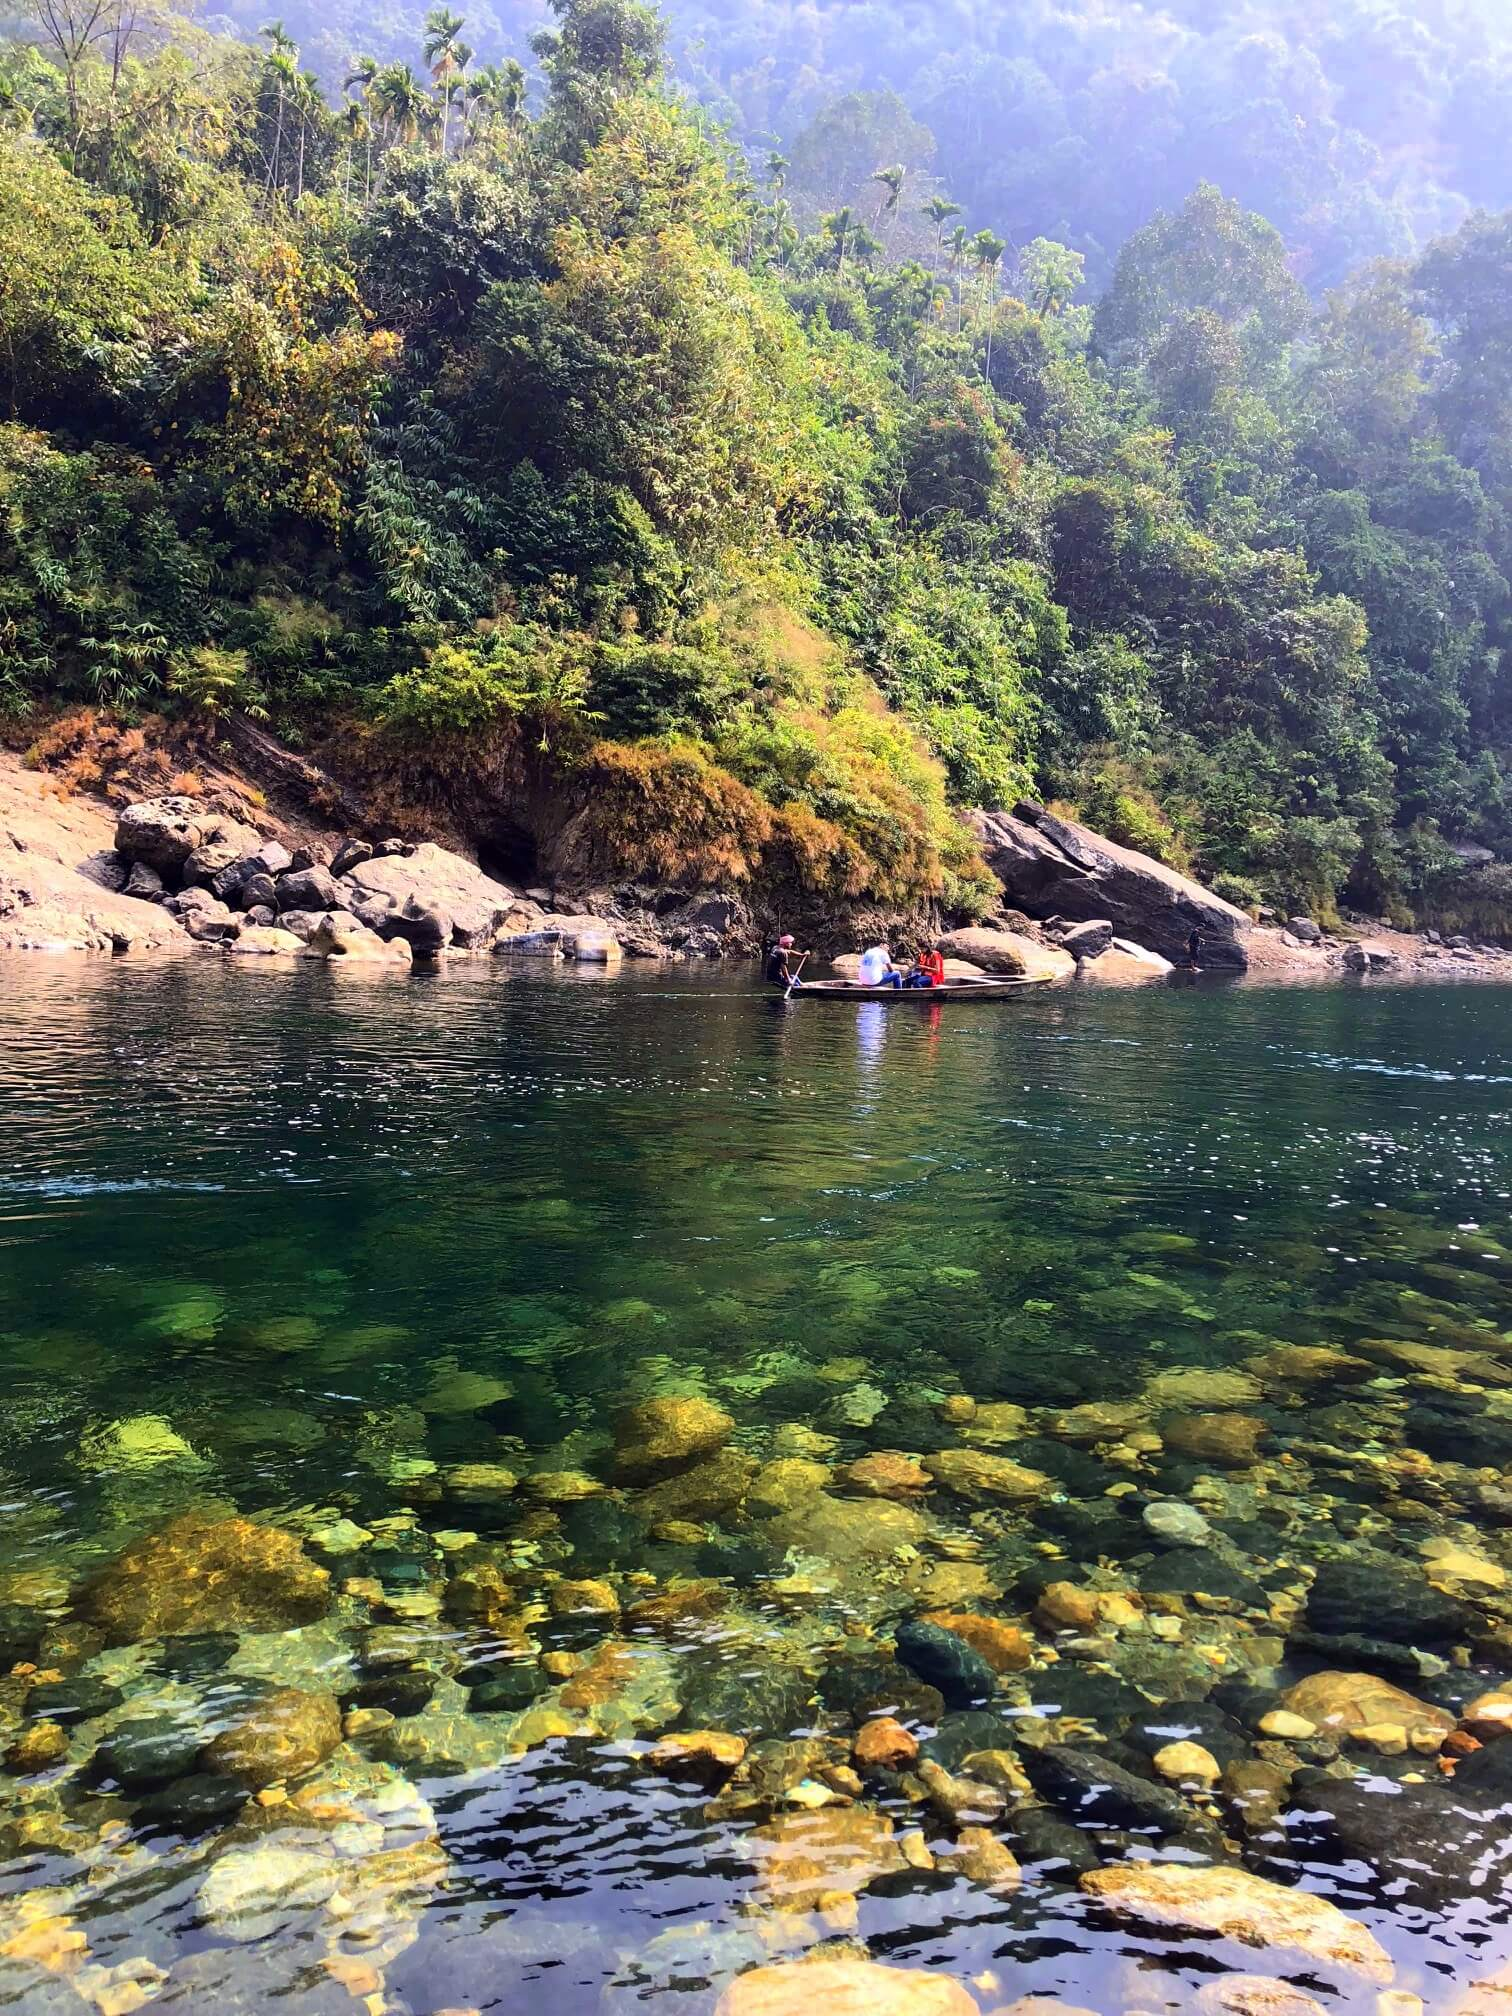 Beautiful clear water dwaki , India Bangladesh border